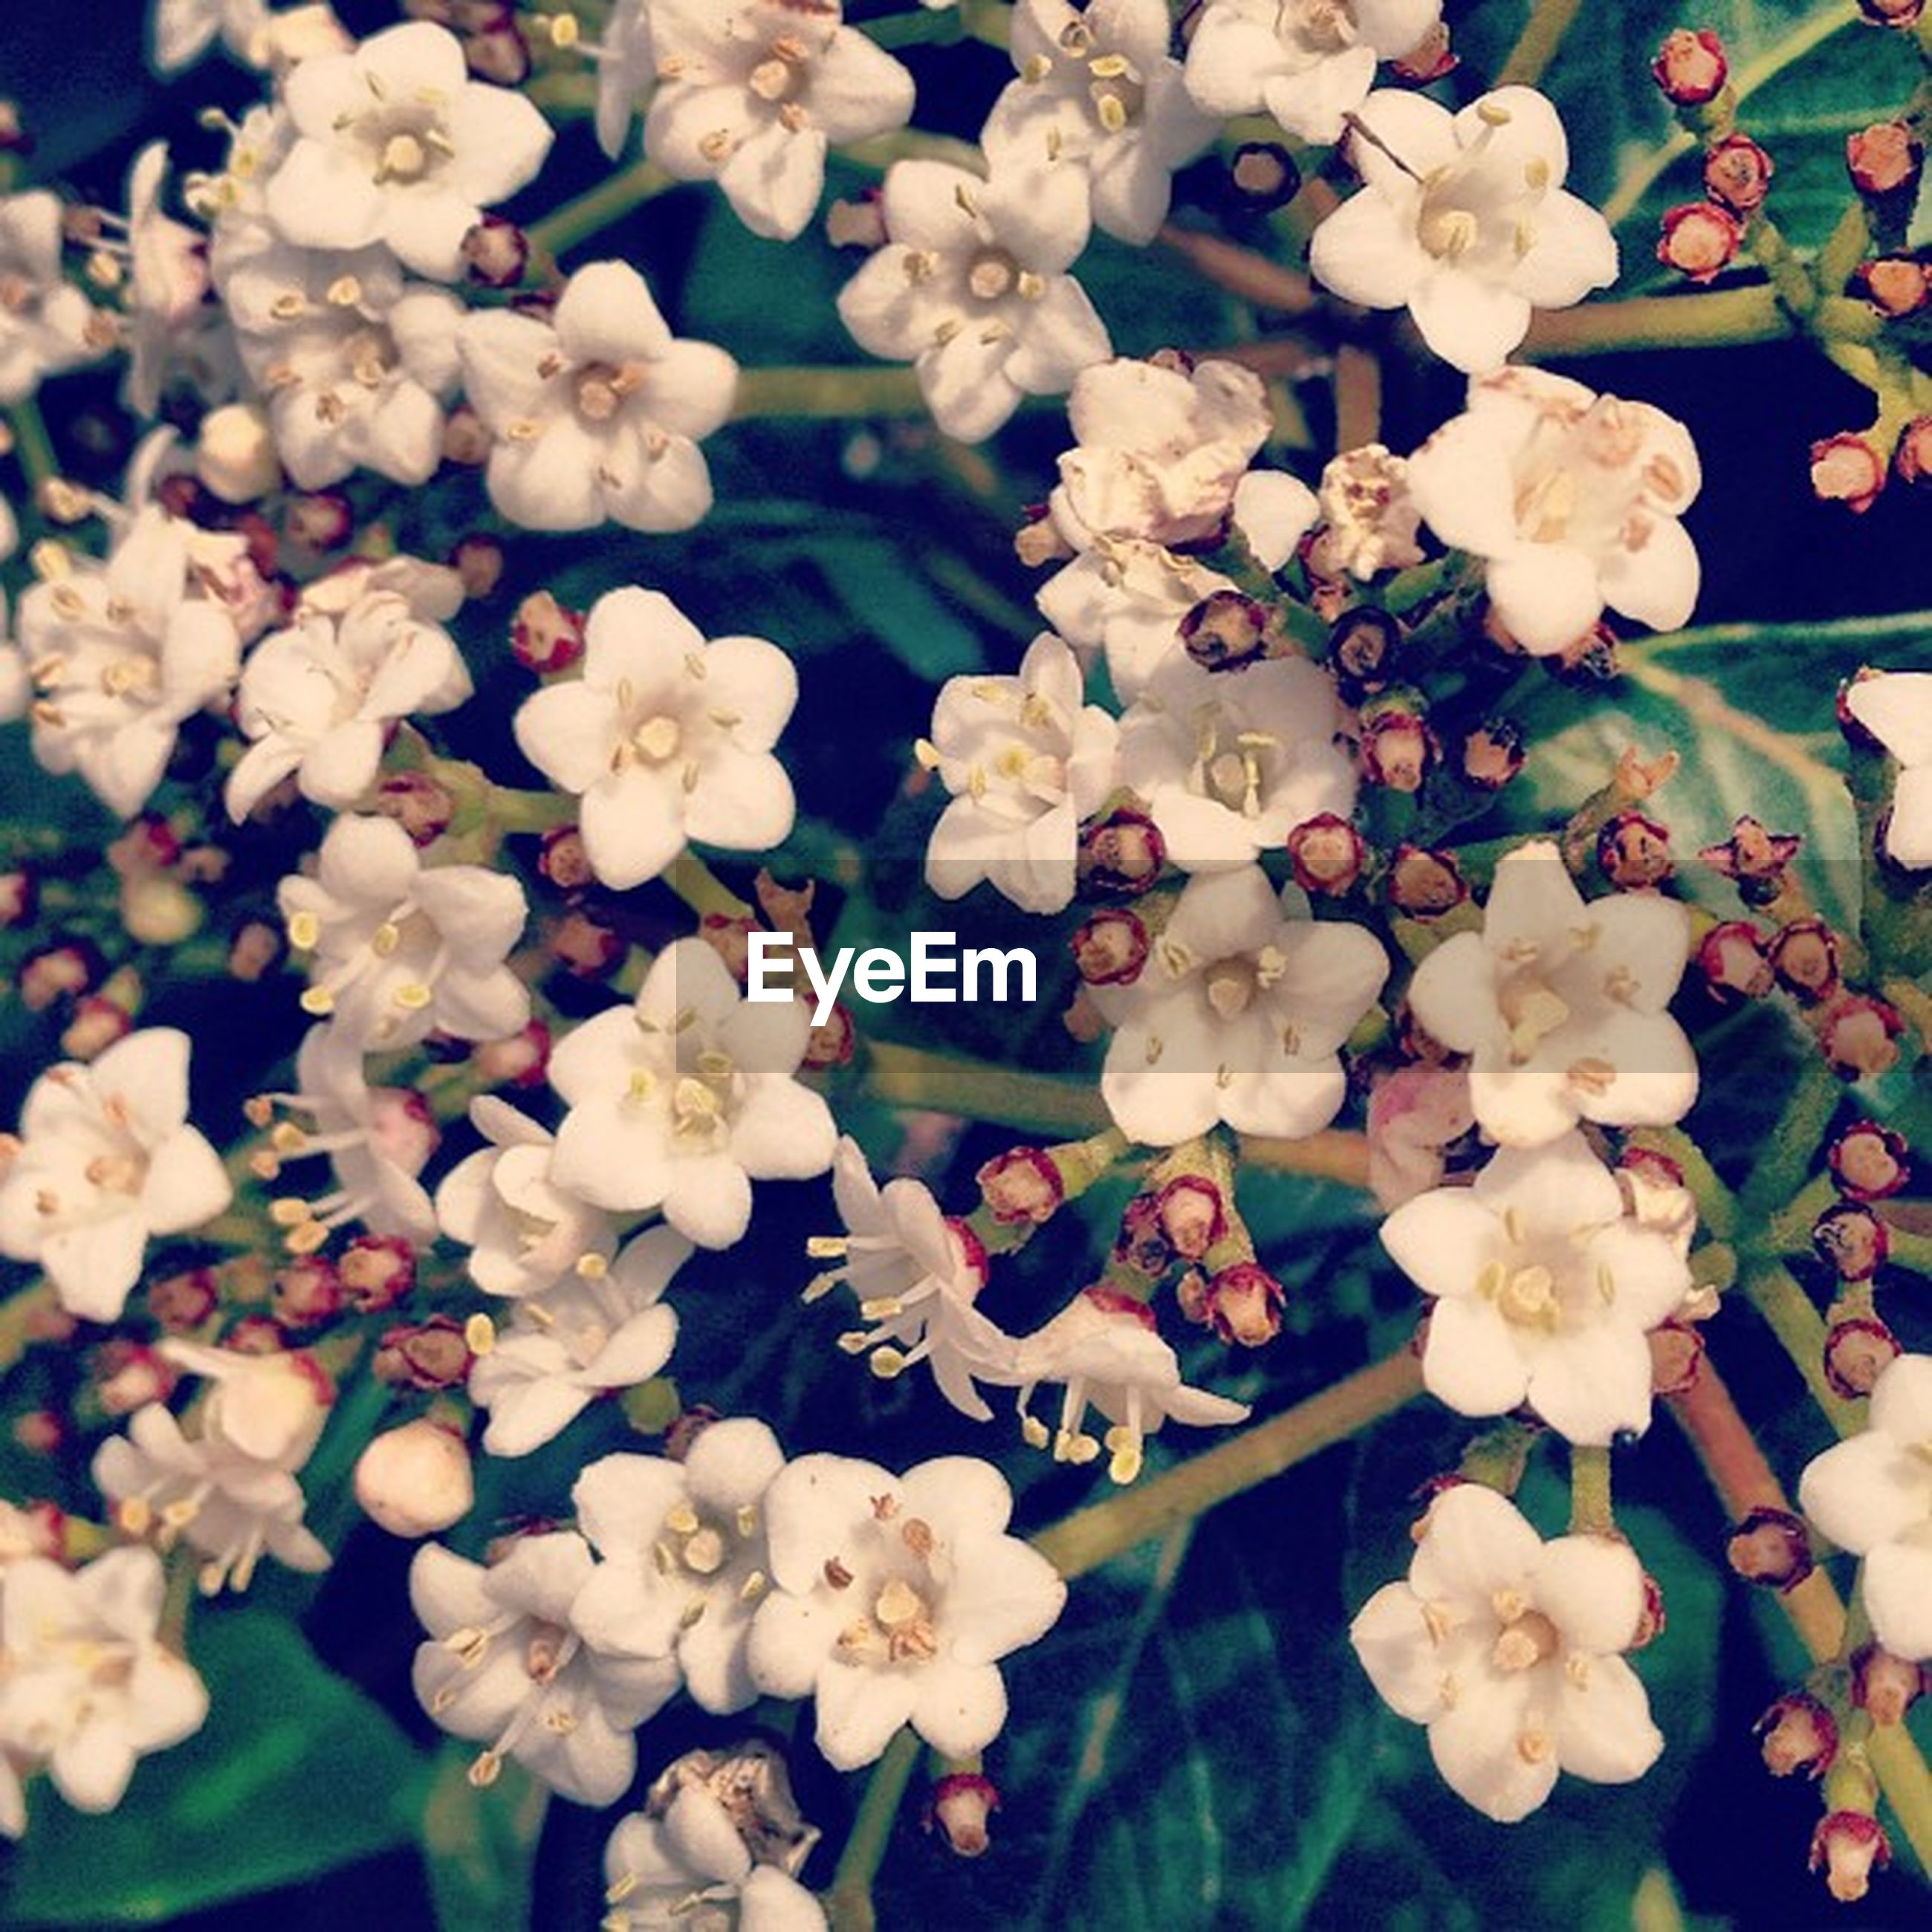 flower, freshness, petal, fragility, flower head, growth, beauty in nature, white color, blooming, nature, plant, abundance, high angle view, in bloom, full frame, blossom, backgrounds, close-up, park - man made space, botany